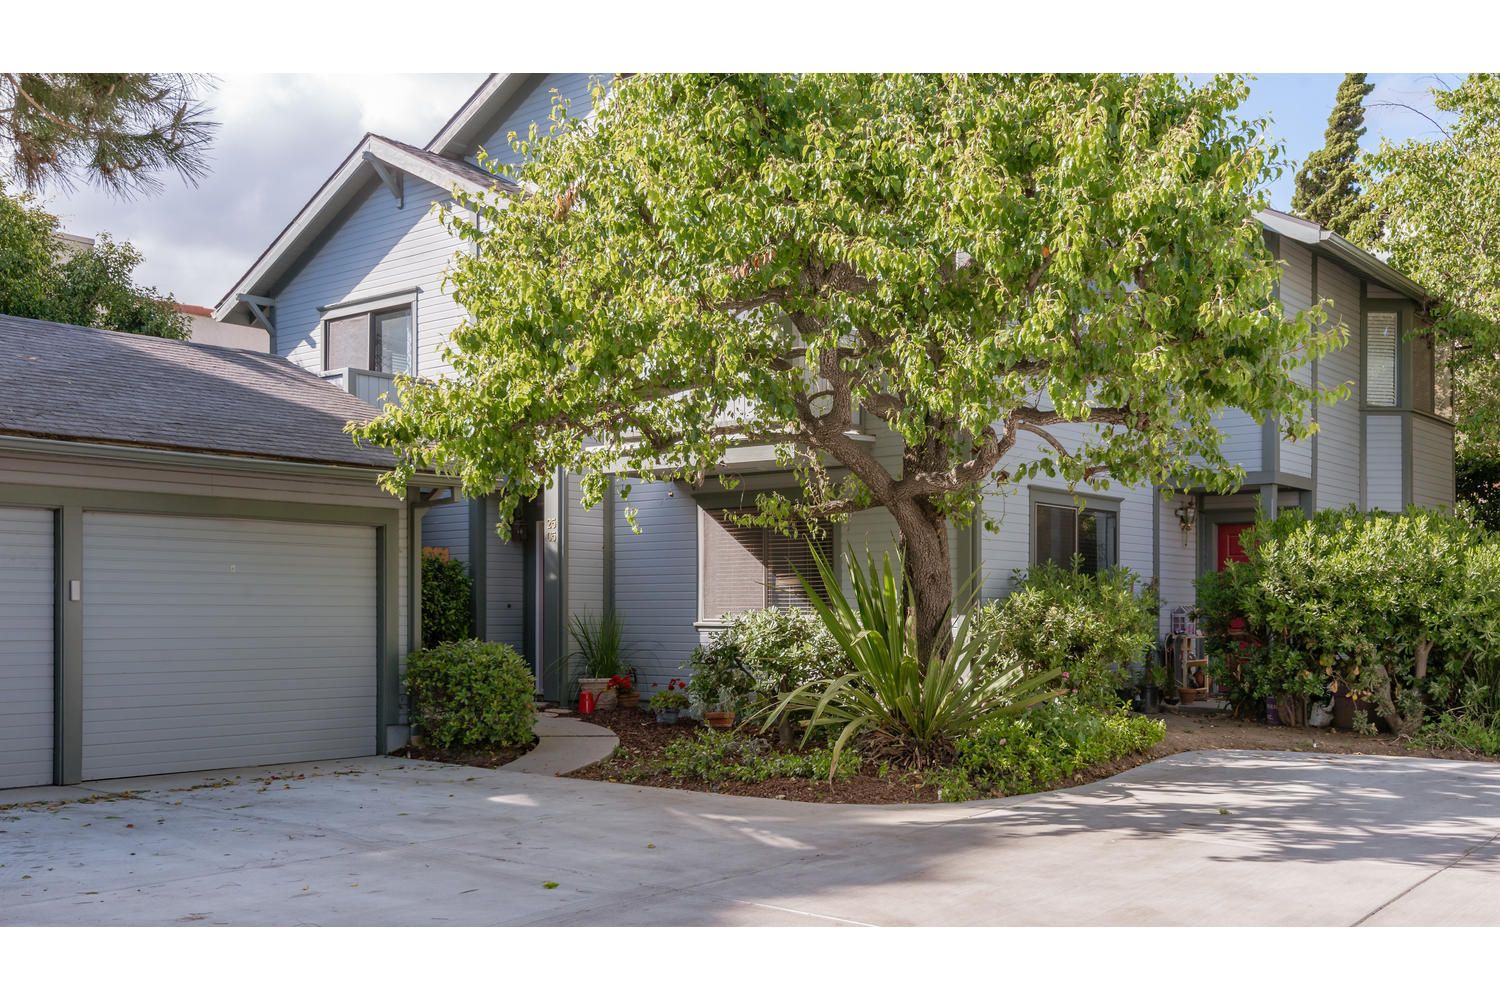 Property photo for 25 Ocean View Ave #C5 Santa Barbara, California 93103 - 18-1331